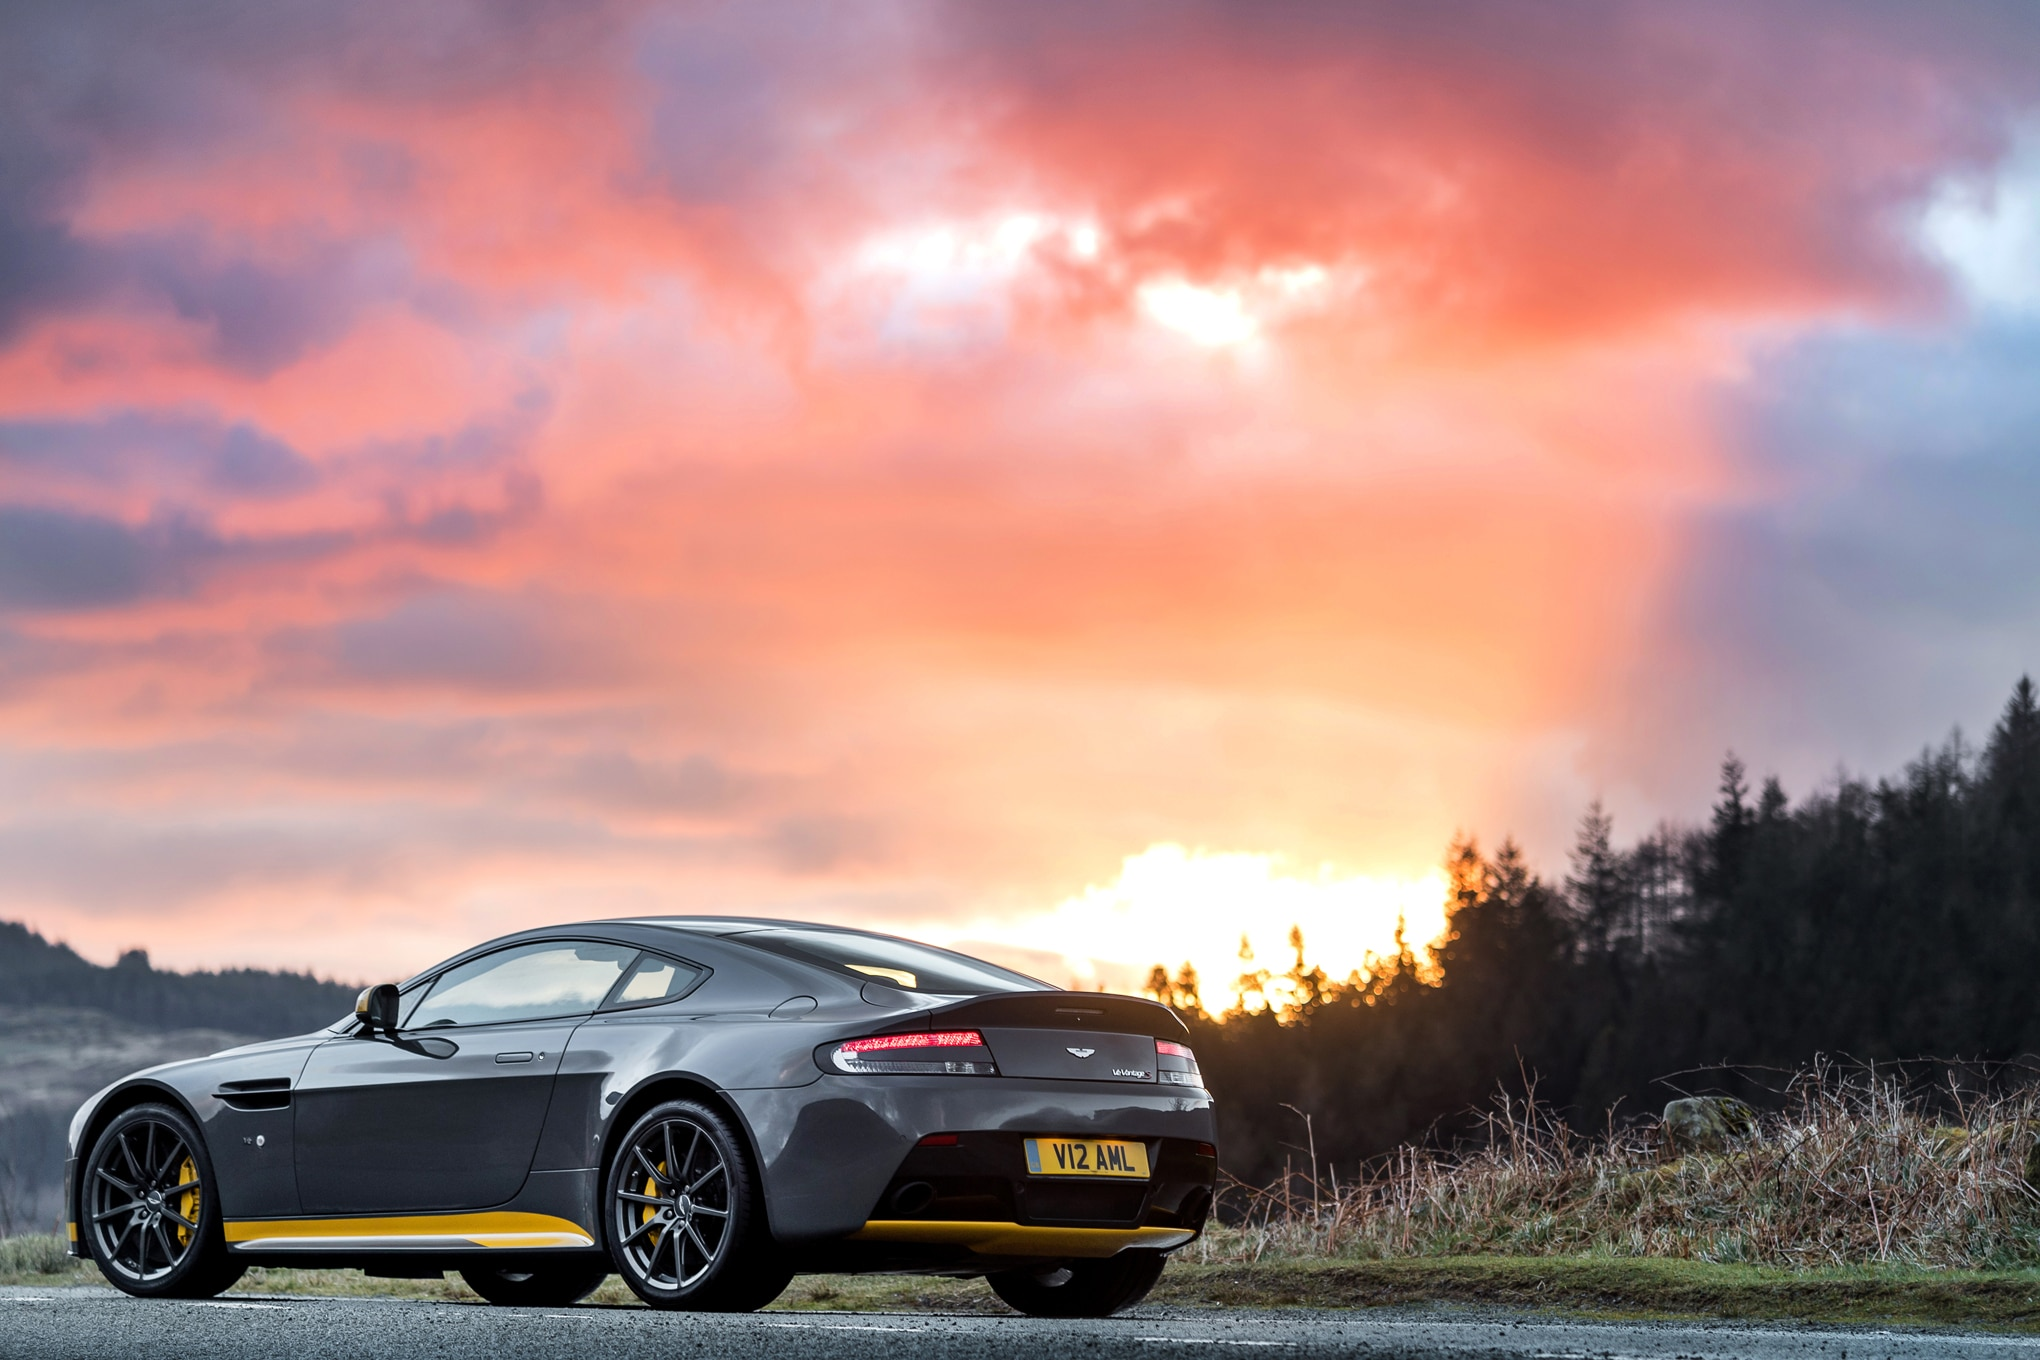 watch the 2017 aston martin v12 vantage s attempt 205 mph on ignition. Black Bedroom Furniture Sets. Home Design Ideas